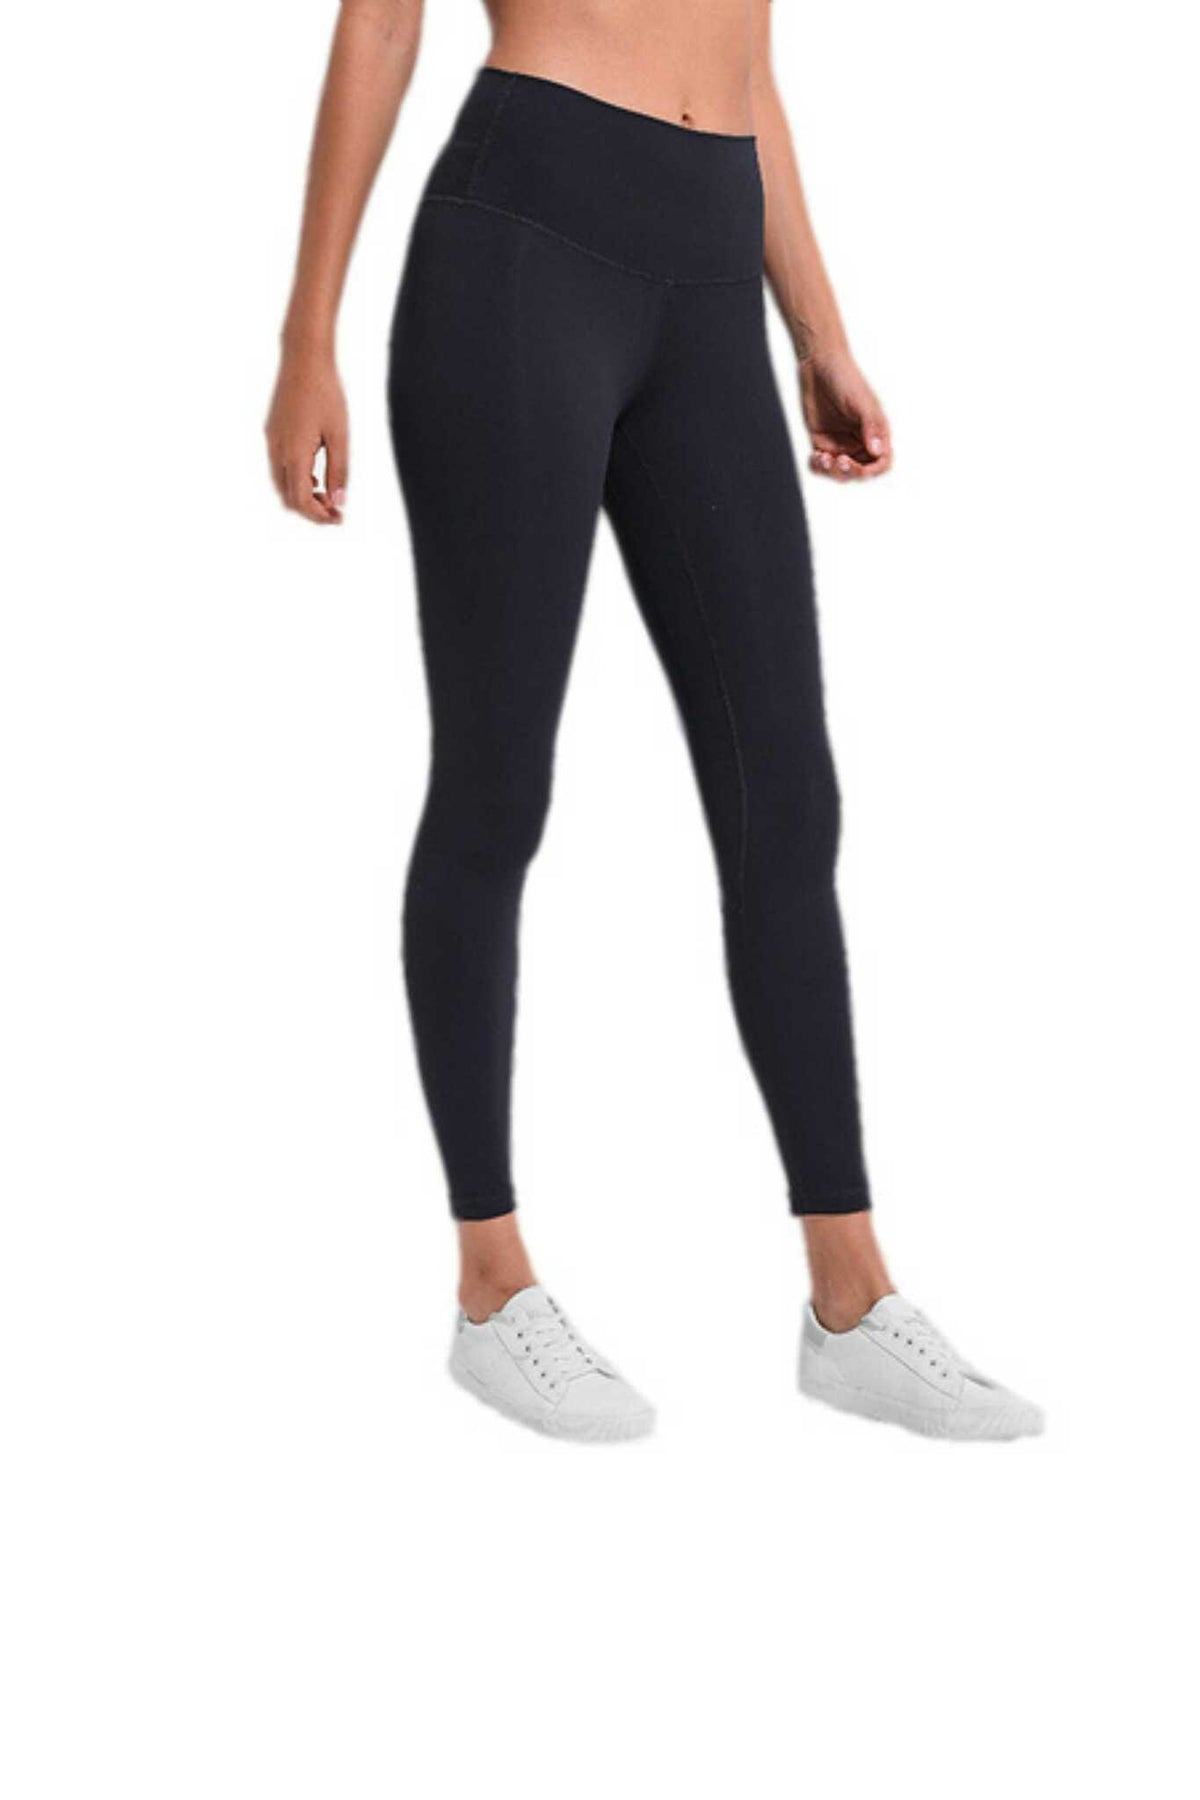 High Waist Legging - Black